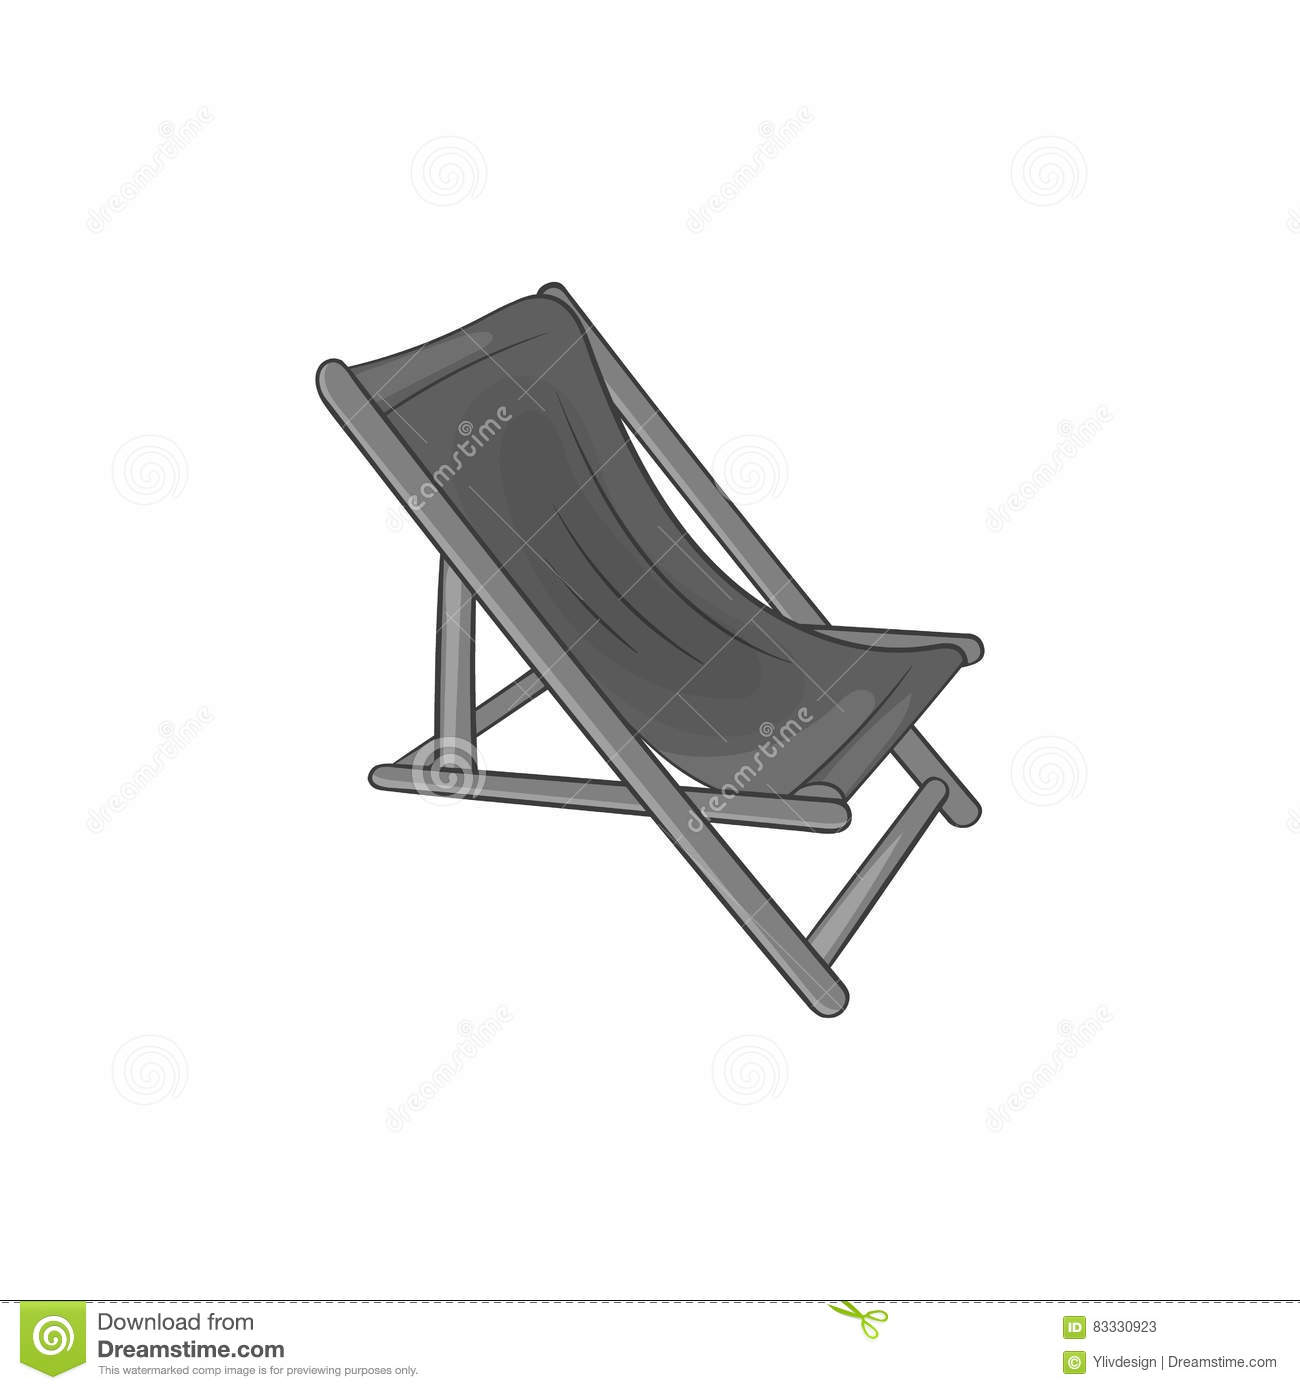 Beatitude cartoons illustrations vector stock images for Beach chaise longue